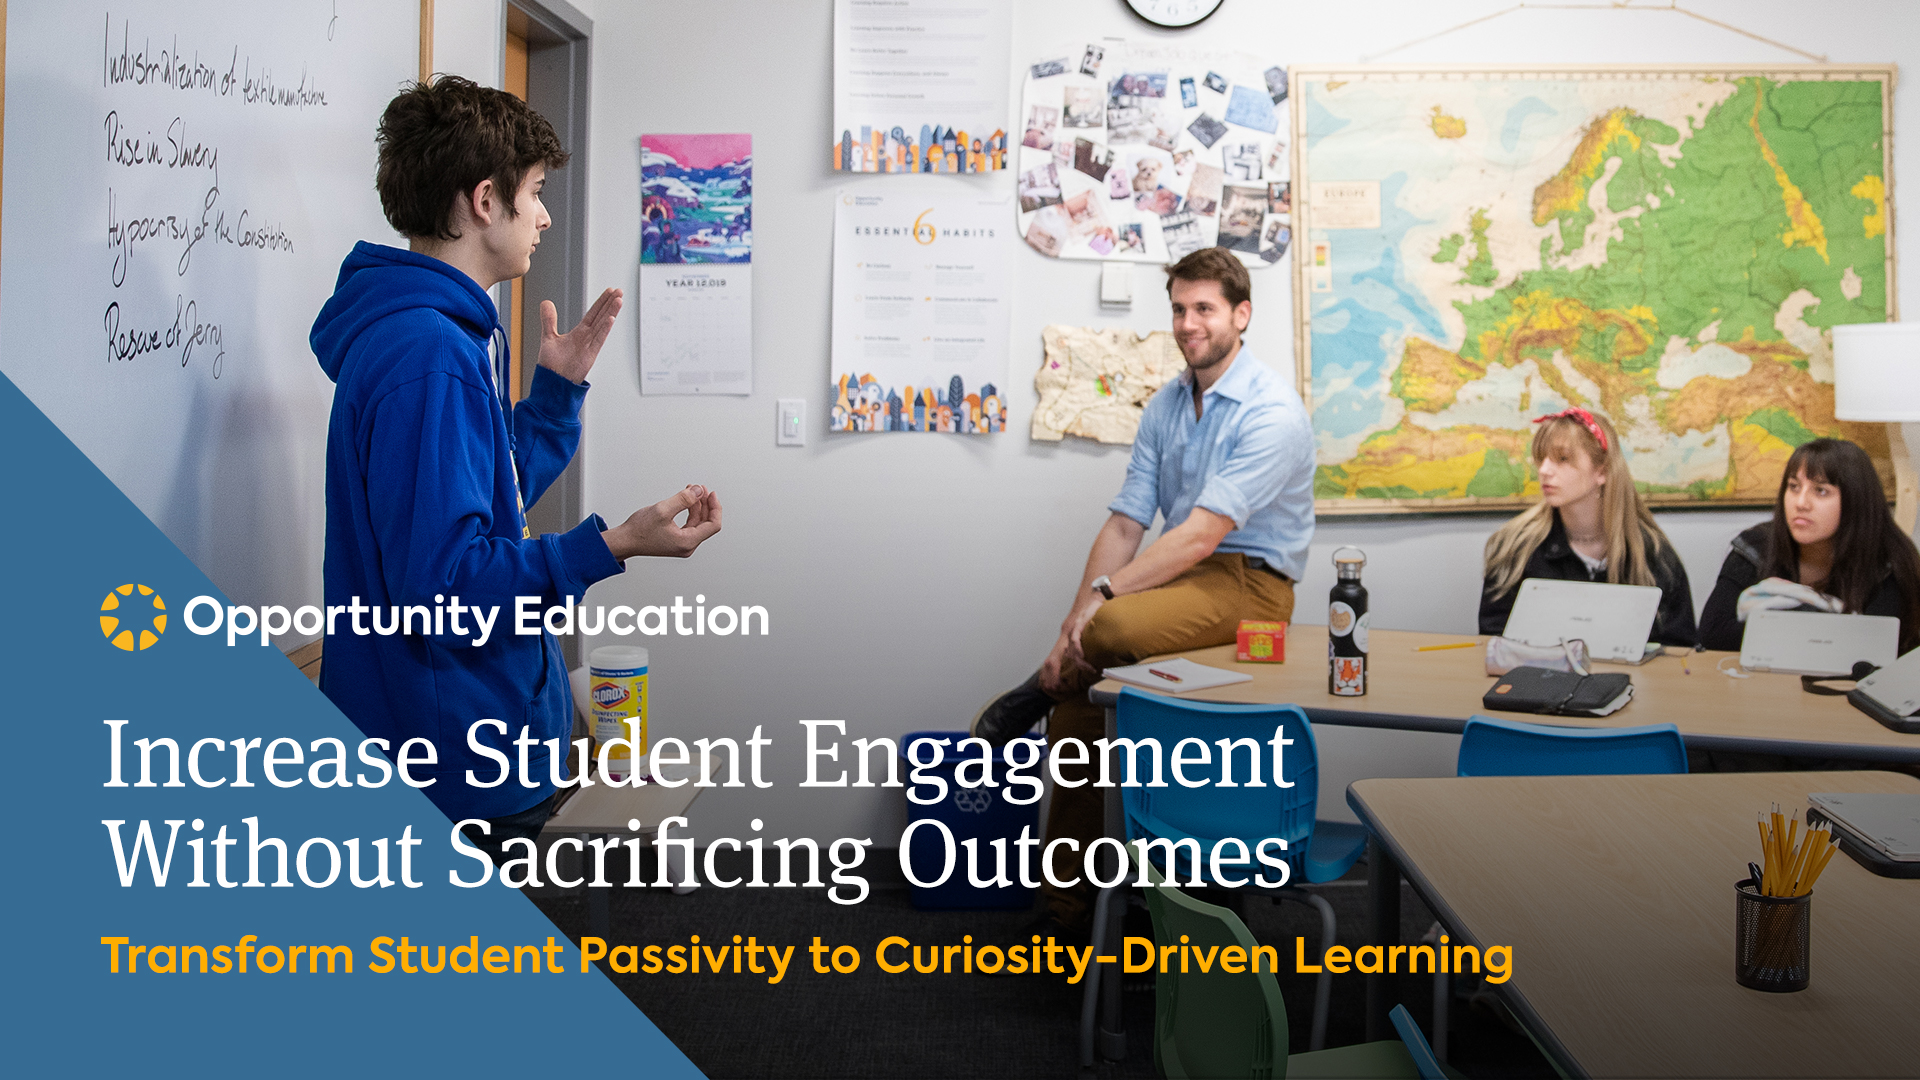 Join Opportunity Education to learn how to increase student engagement at your high school.